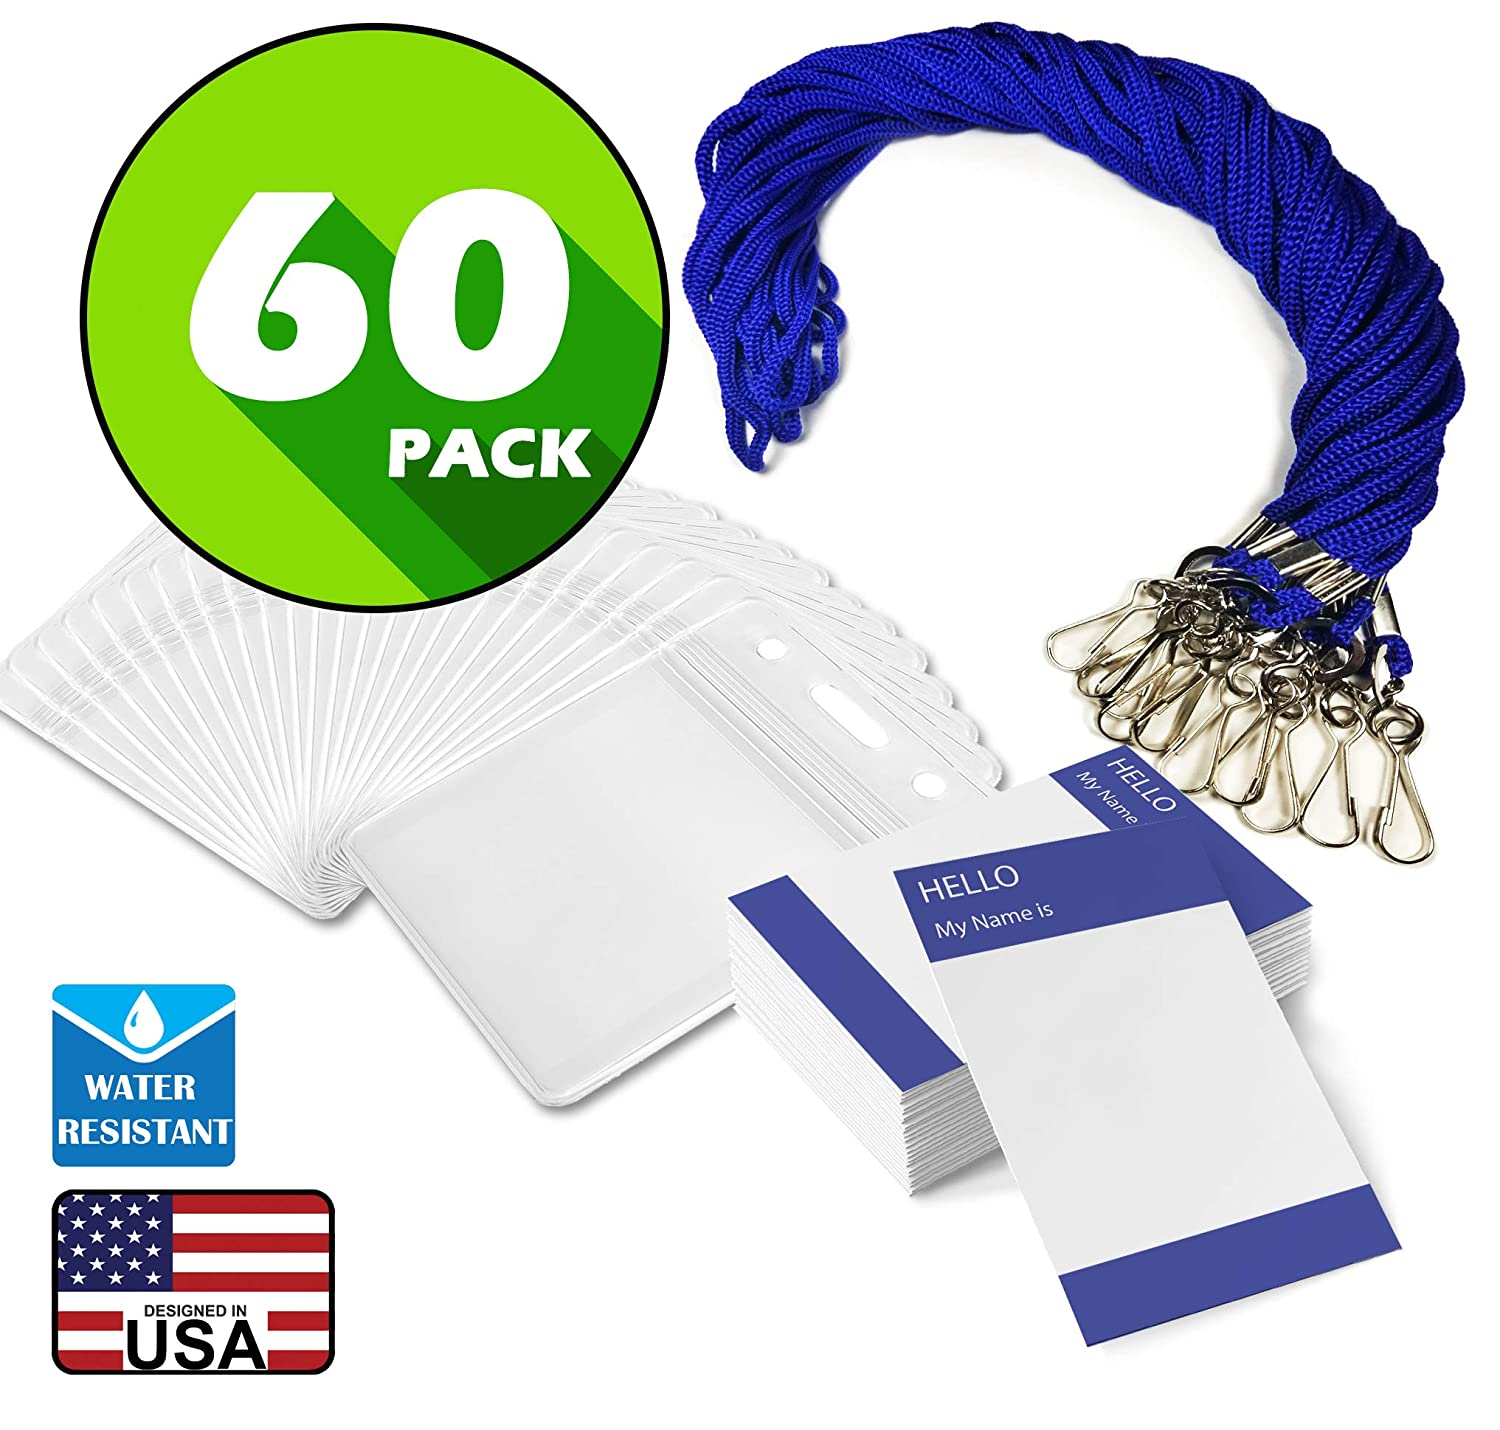 Waterproof Name tag with Lanyard Swivel J-Hook Clip Kids Name Label School Camp Field Trip Church Business Event Trade Show Conference Badge Holder Royal Blue Horizontal, 60 Pack